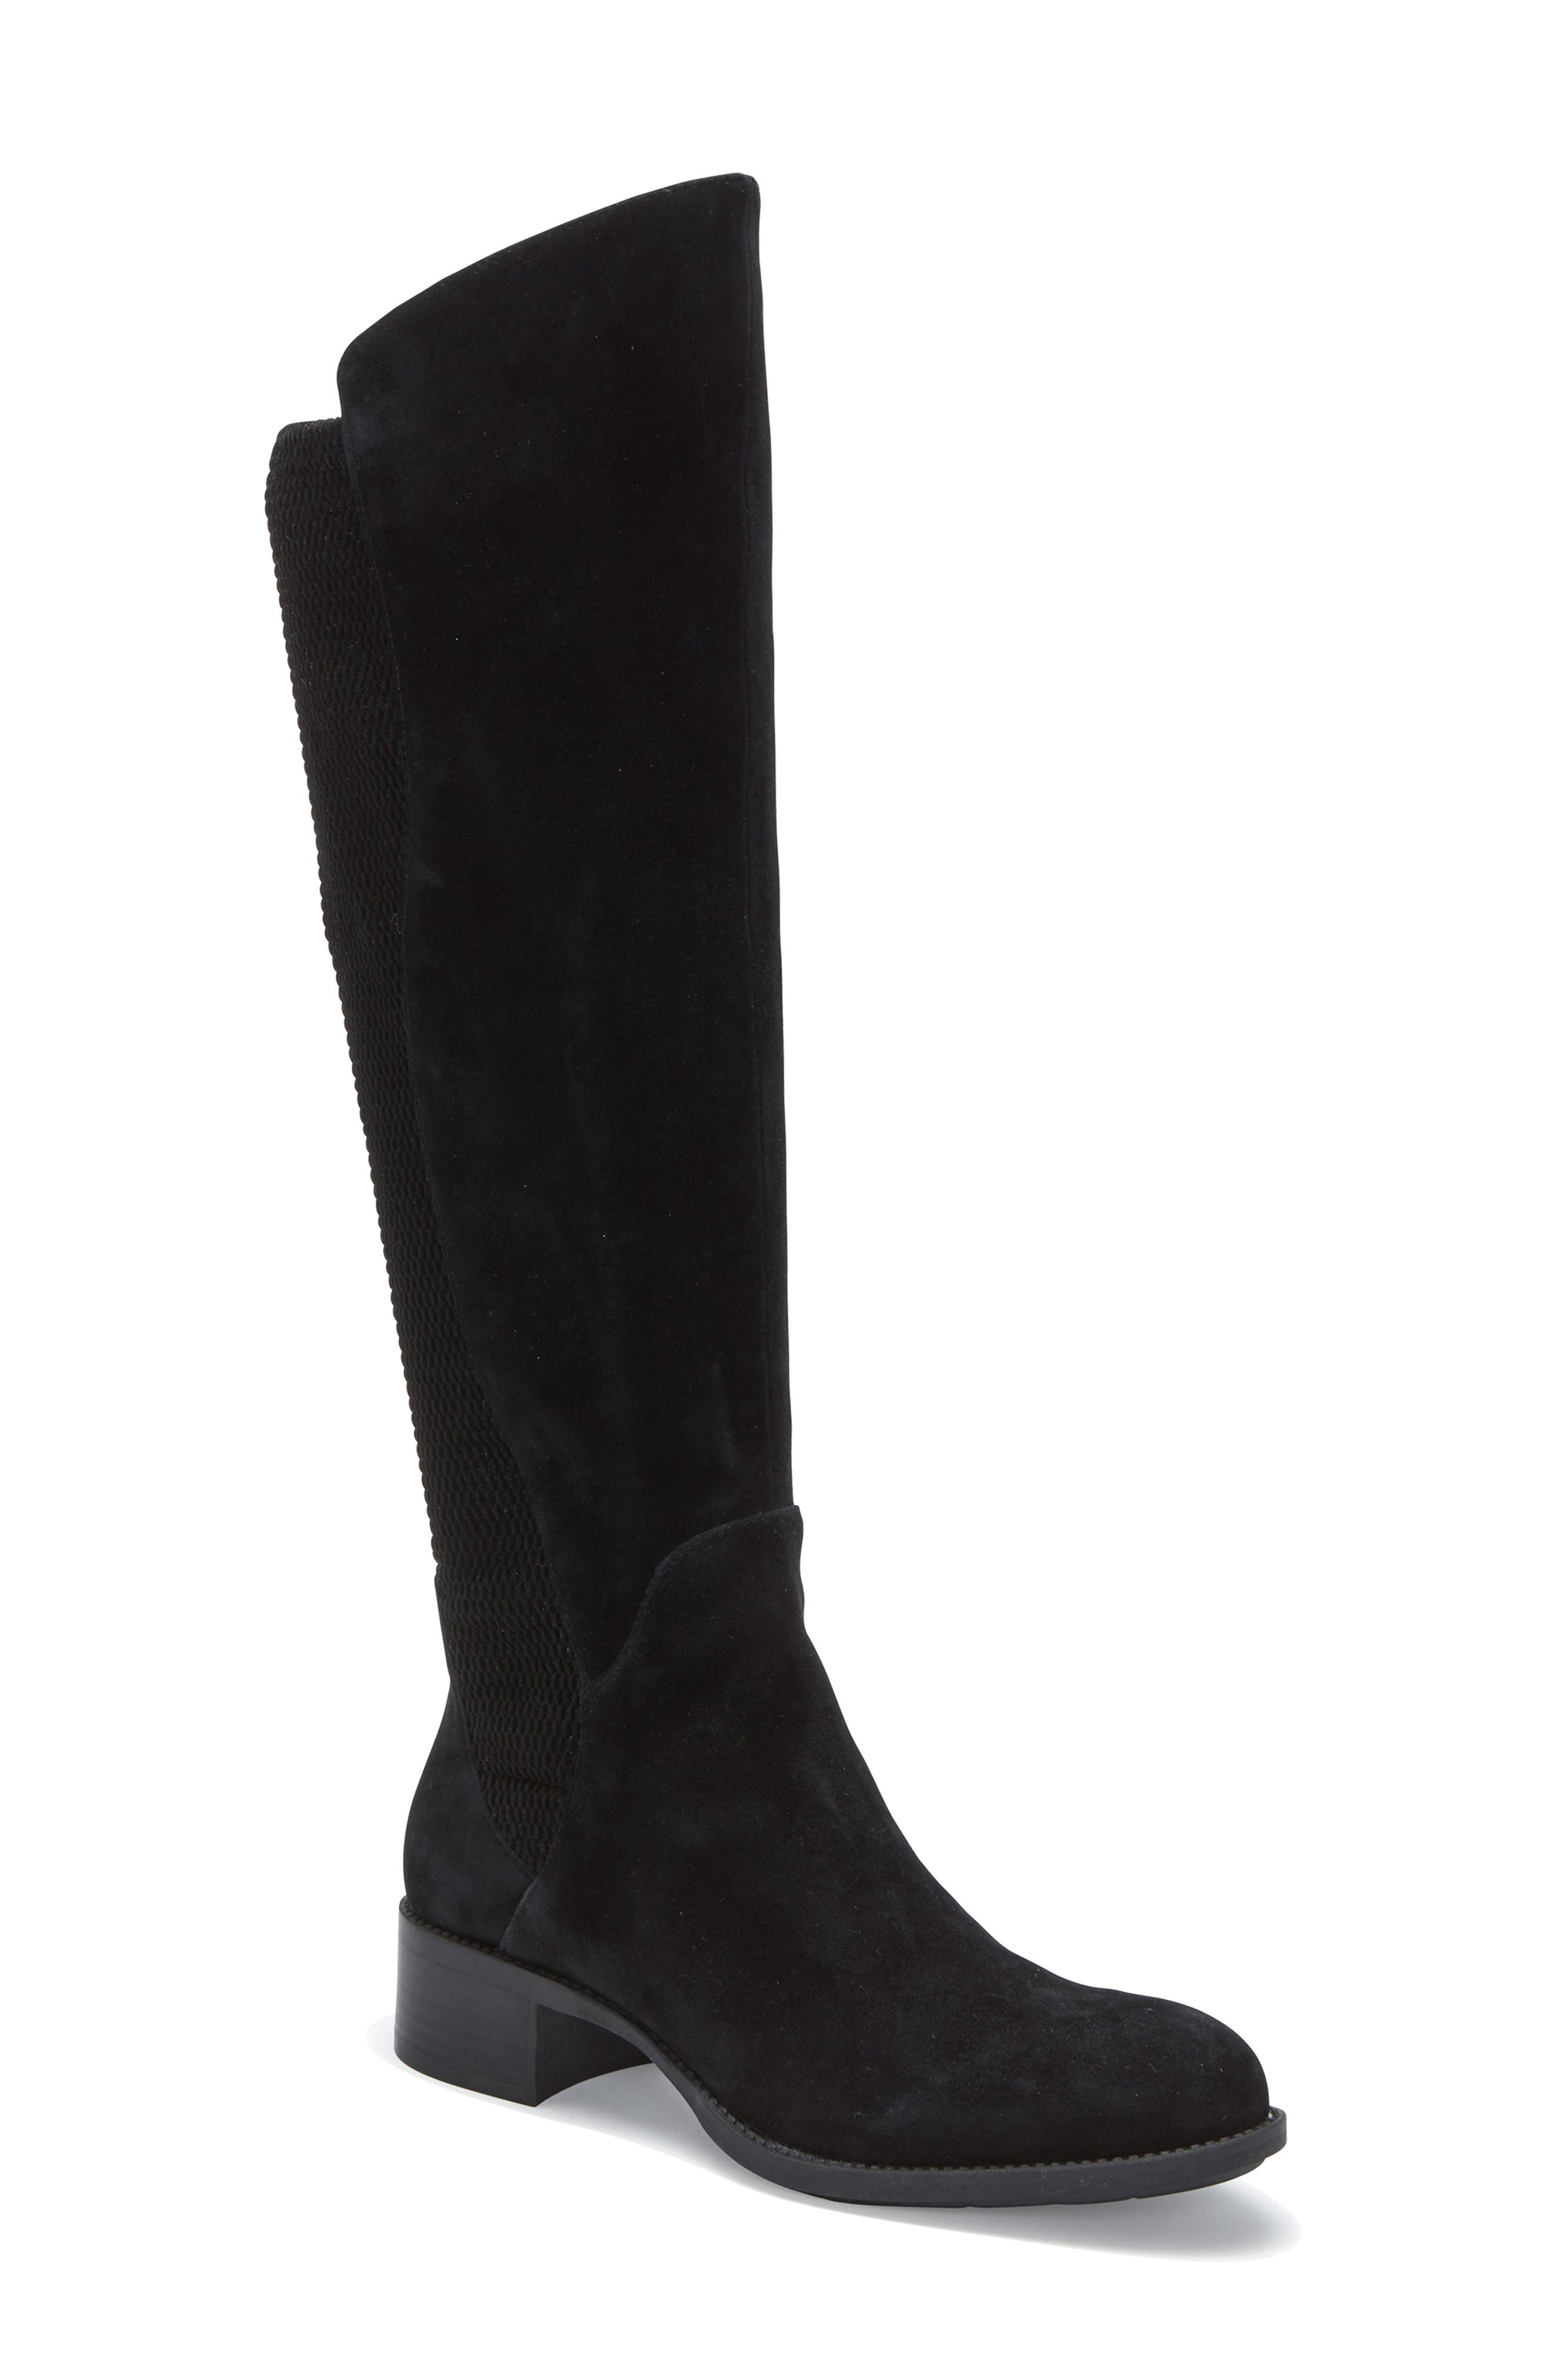 ME TOO, Striker Boot, Main thumbnail 1, color, BLACK SUEDE